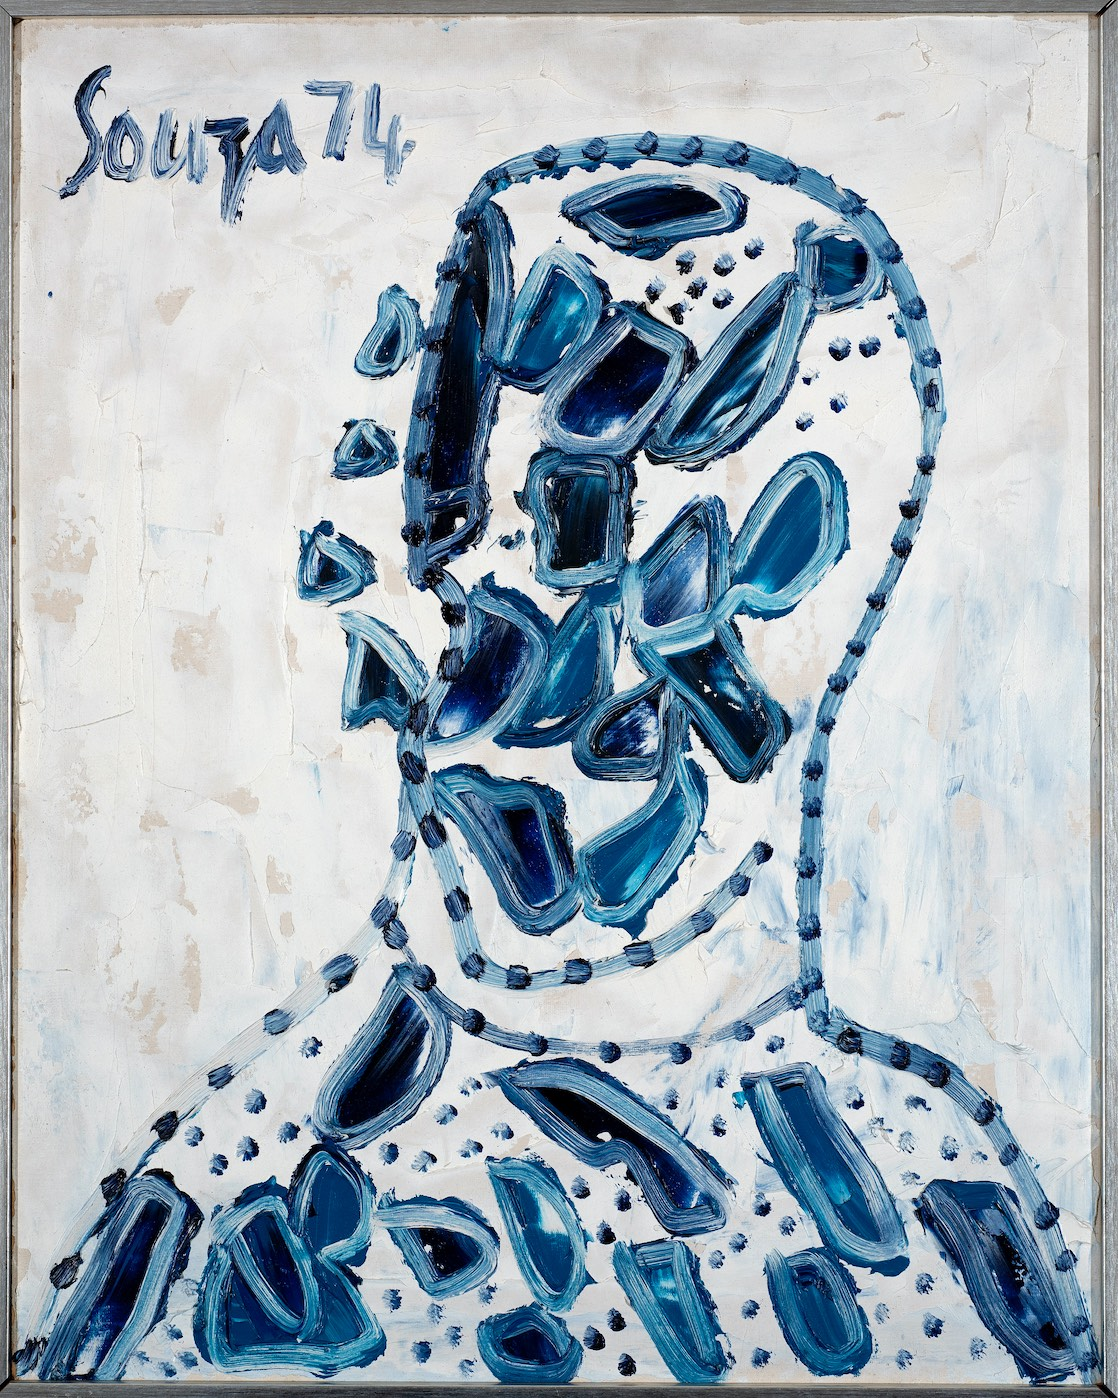 FRANCIS NEWTON SOUZA (1924-2002) Volvox Head, 1974 Oil on board Signed and dated 'Souza 74' upper left, the reverse inscribed 'FN Souza, Volvox Head - 1974 oil, 20 x 15' 50.8 x 40.6 cm 20 x 16 in PROVENANCE Private UK collection; Grosvenor Gallery, London EXHIBITIONS F.N. Souza, Saffronart and Grosvenor Gallery, New York, 16 September - 15 October 2008, No. 37, (illustrated in the catalogue p.93 and 119) South Asian Modern Art 2020, Grosvenor Gallery, London, 23 July - 14 August 2020 (illustrated exh. cat. pg. 29)